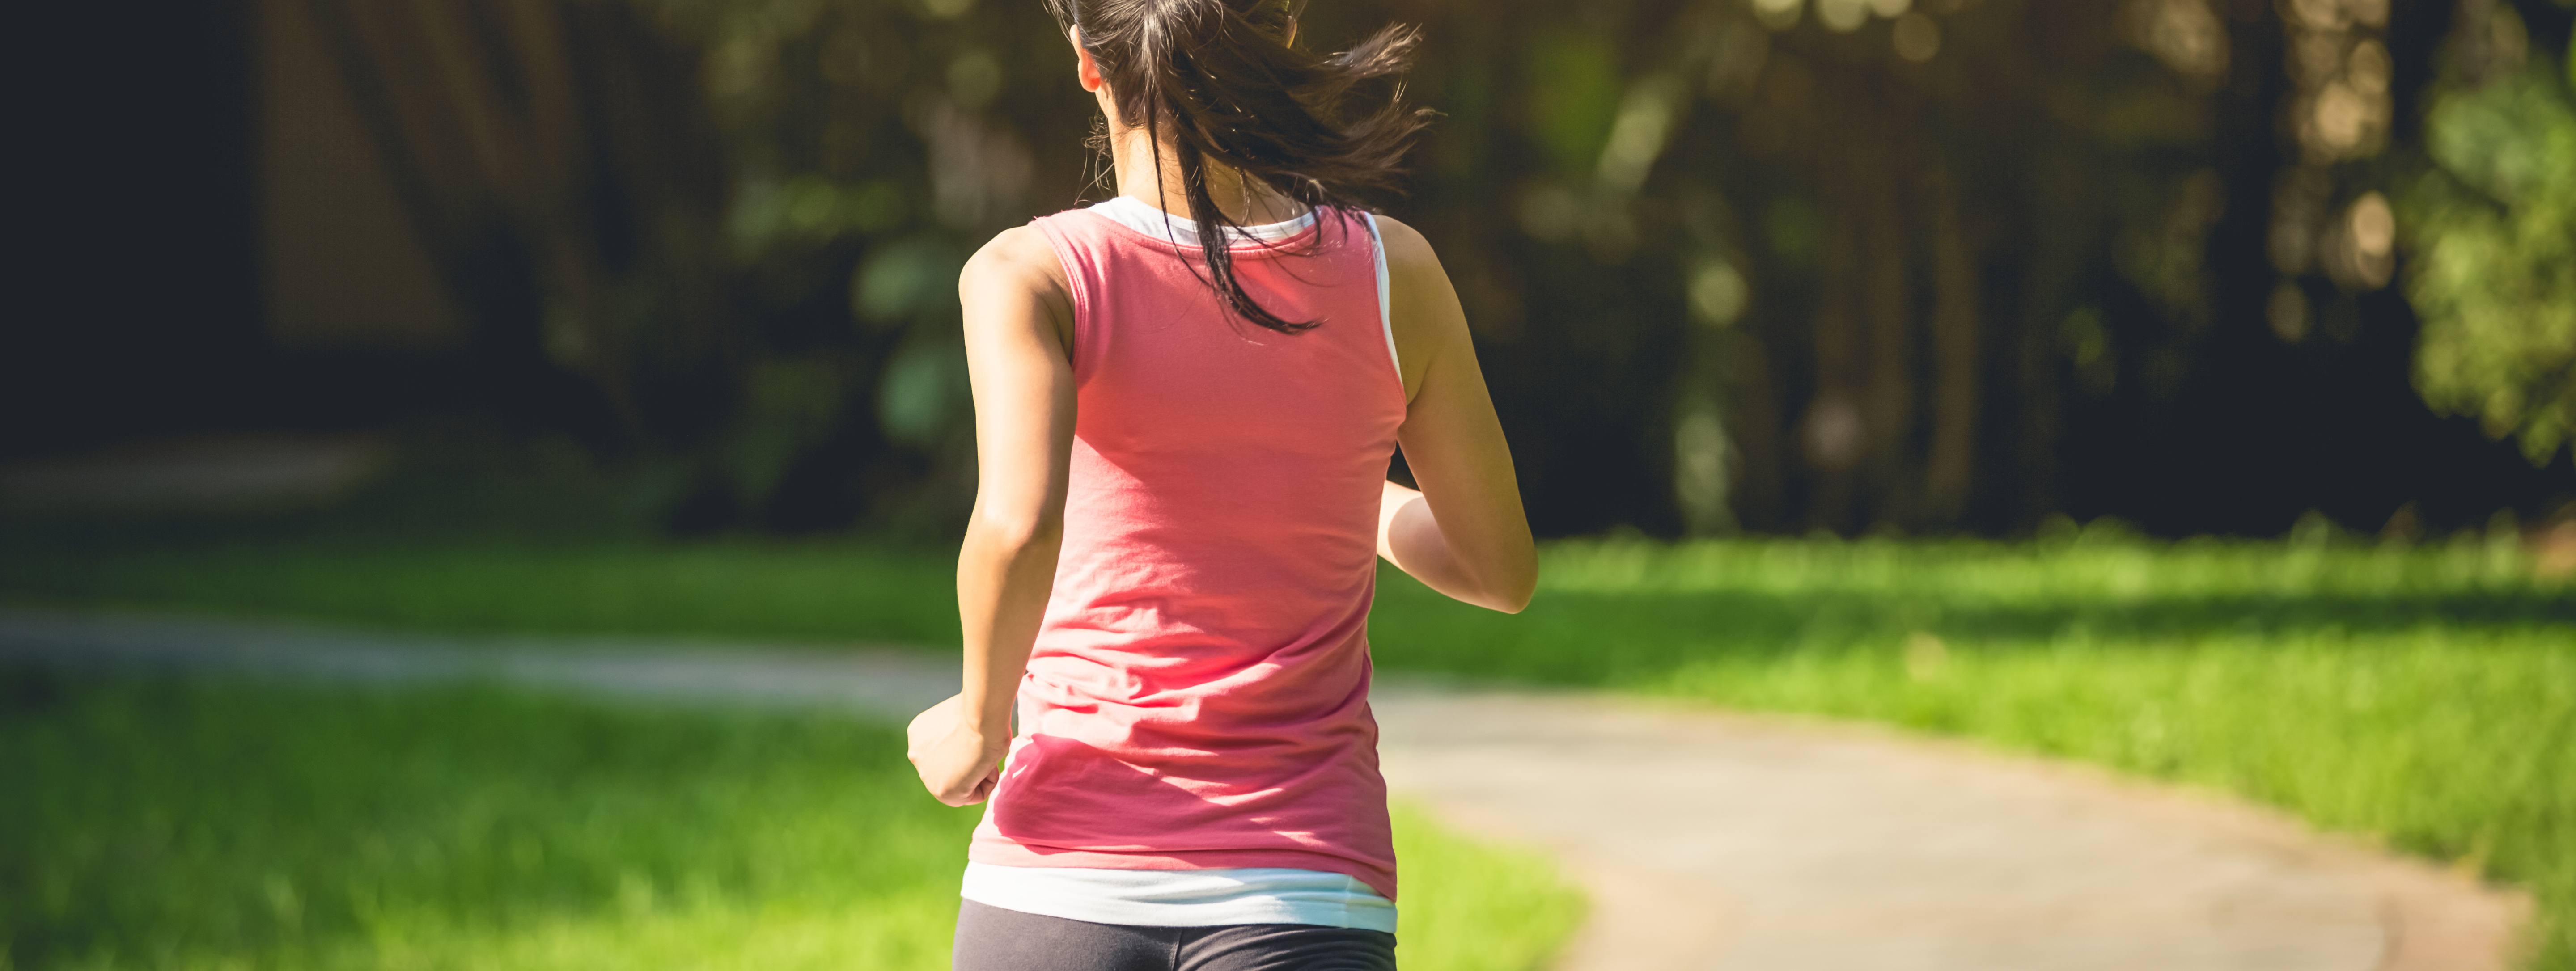 If you find yourself with extra time on your hands and the sudden urge to channel your coronavirus anxiety into breaking a sweat, make sure you're doing so safely. Because, yes, there is such a thing as getting too much exercise.